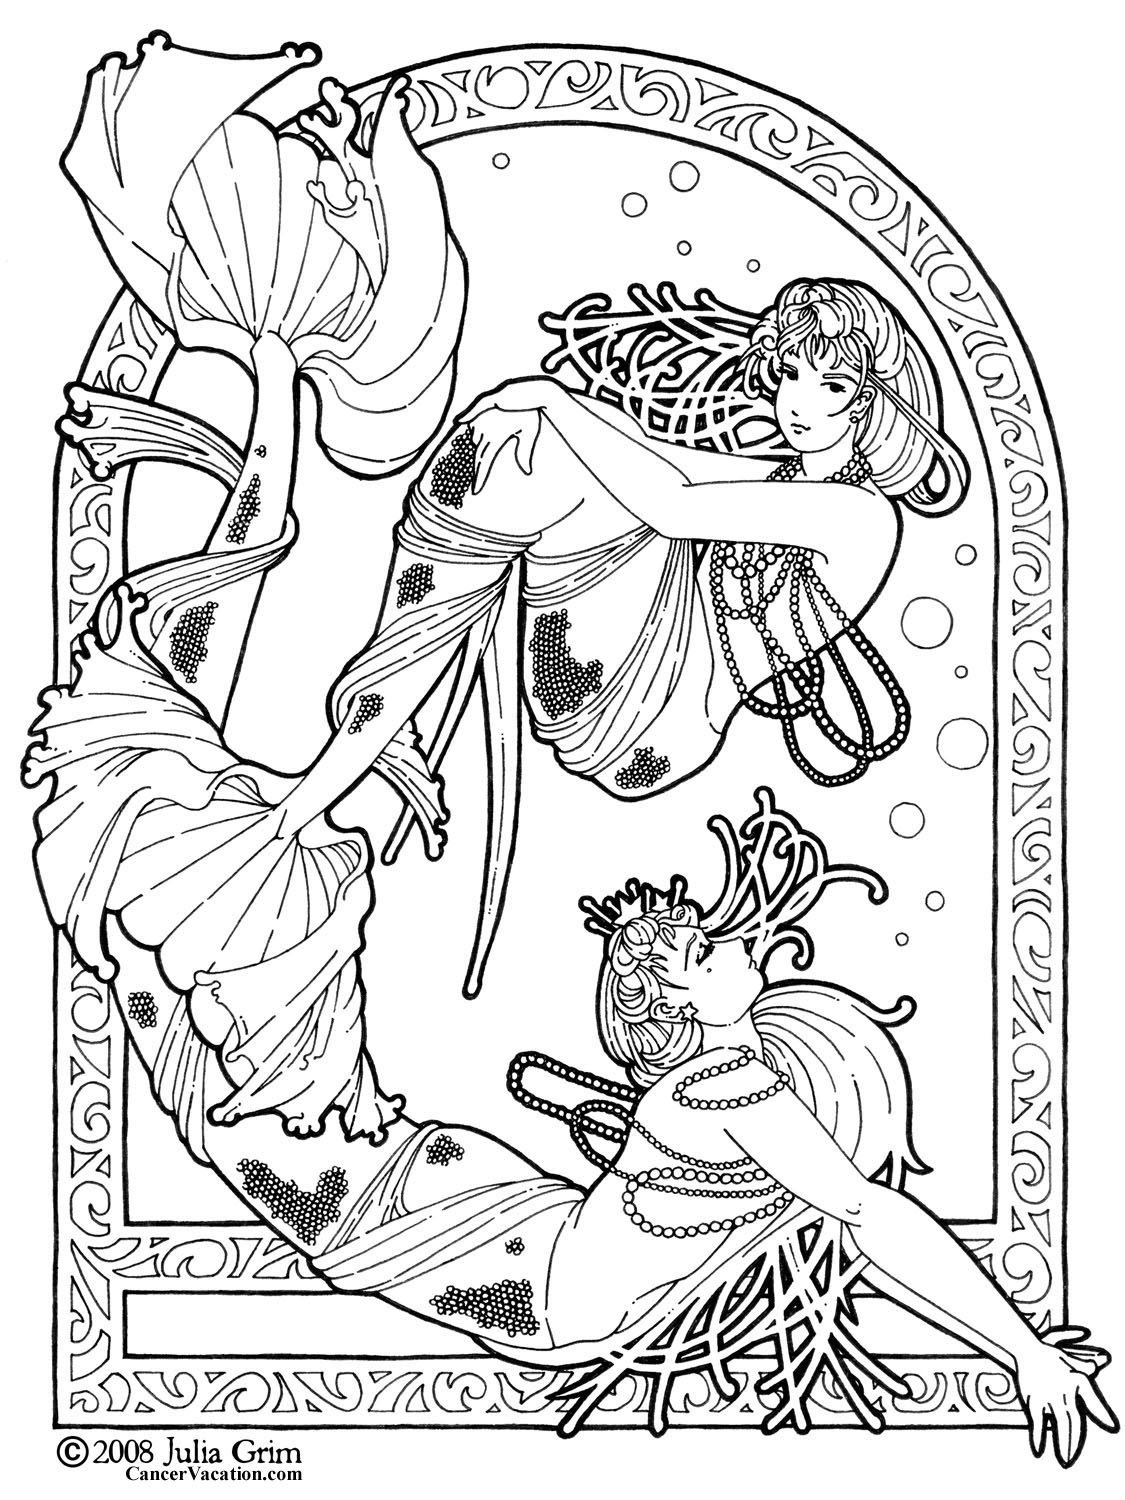 painting coloring pages free printable cinderella activity sheets and coloring pages coloring painting